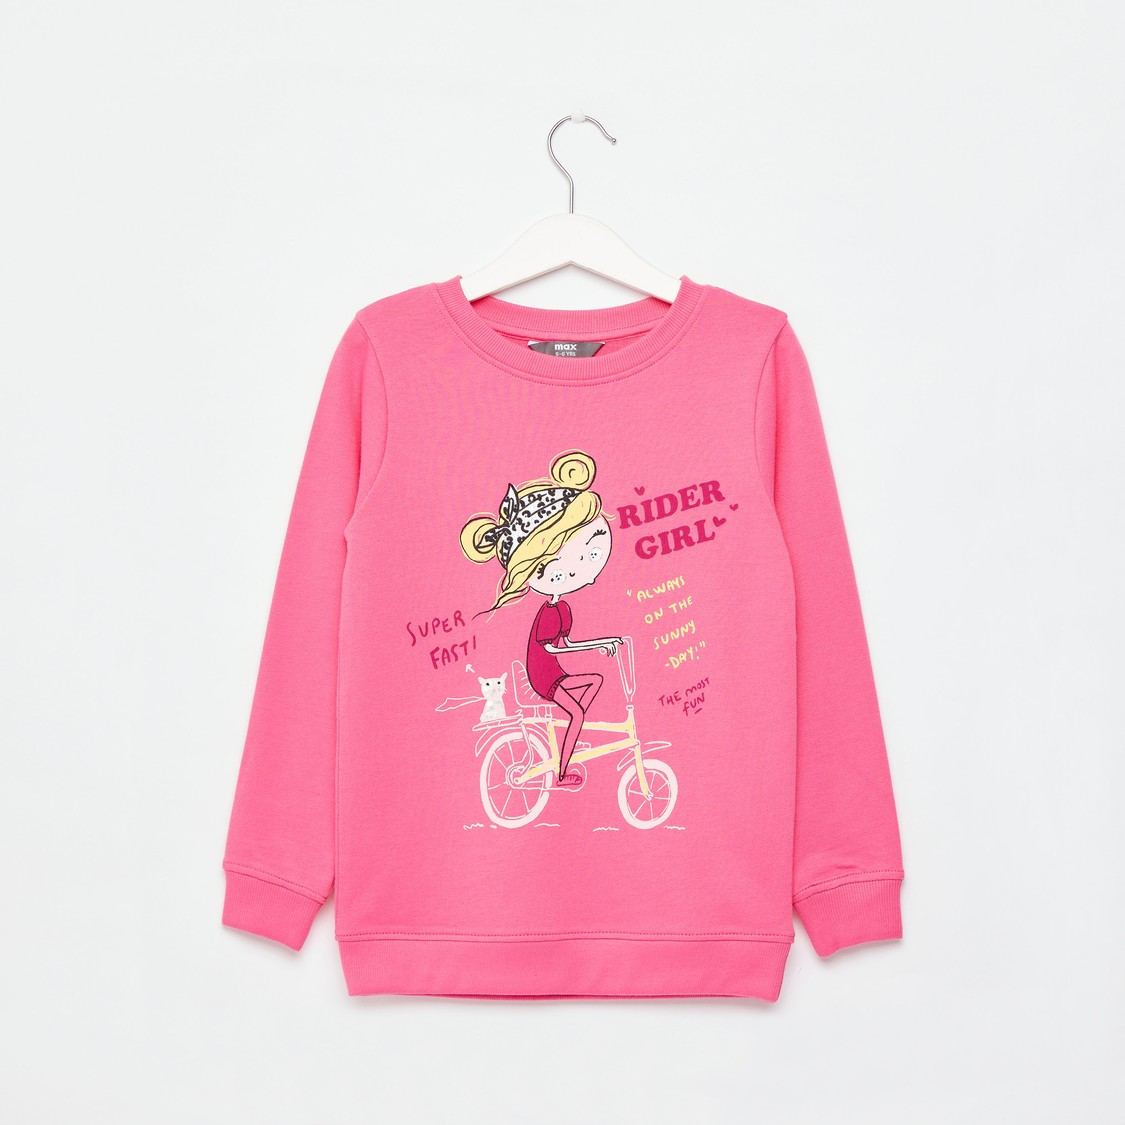 Graphic Print Sweatshirt with Round Neck and Long Sleeves